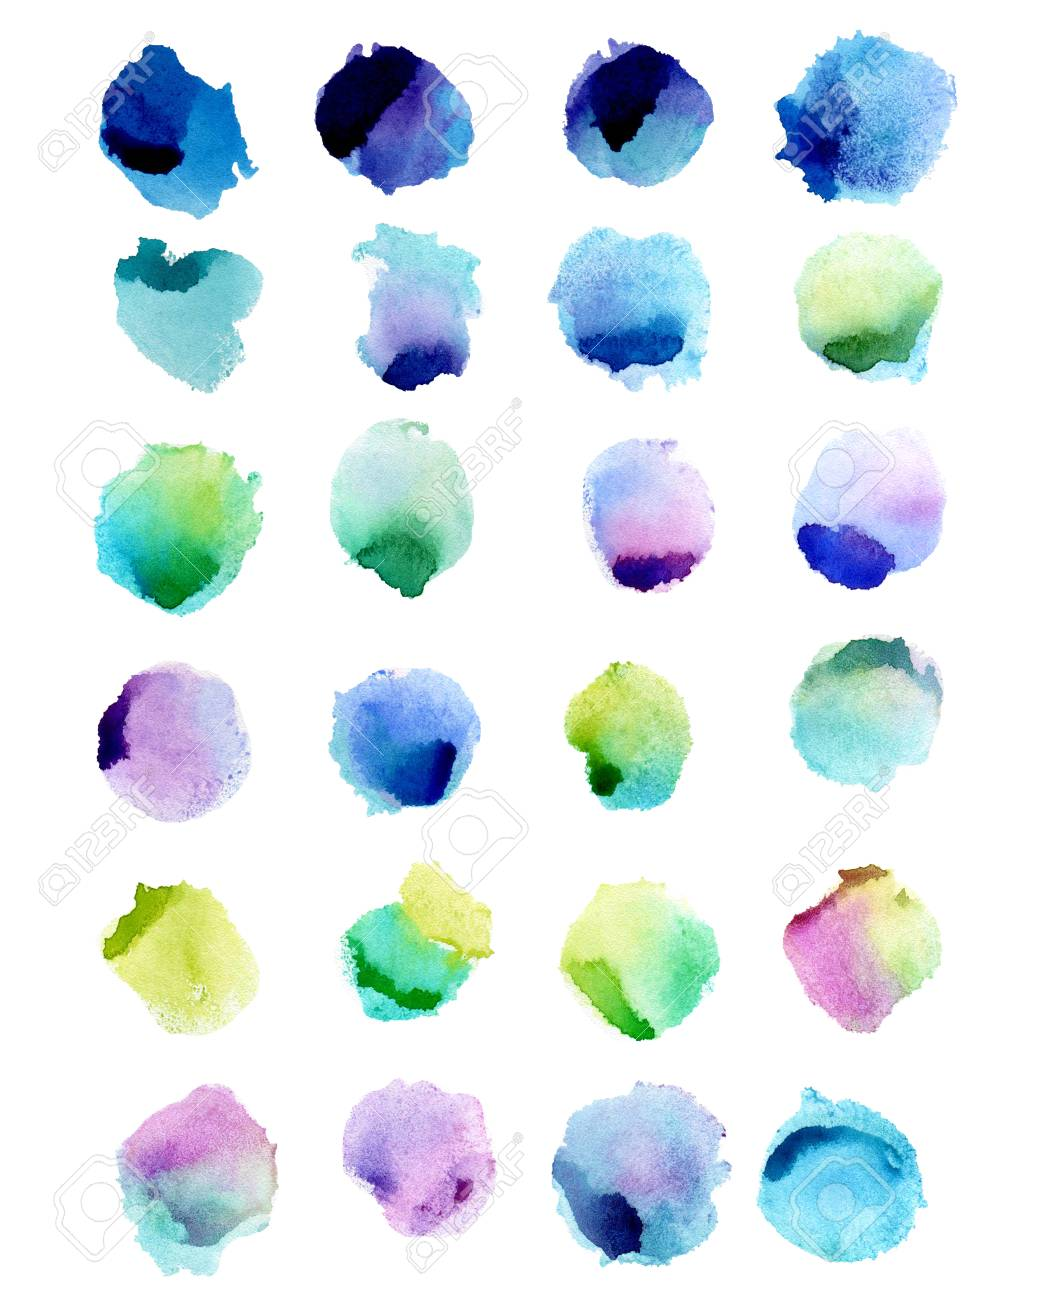 Watercolor splashes isolated on white background. Hand drawn illustration. Abstract colorful shapes. - 63721264